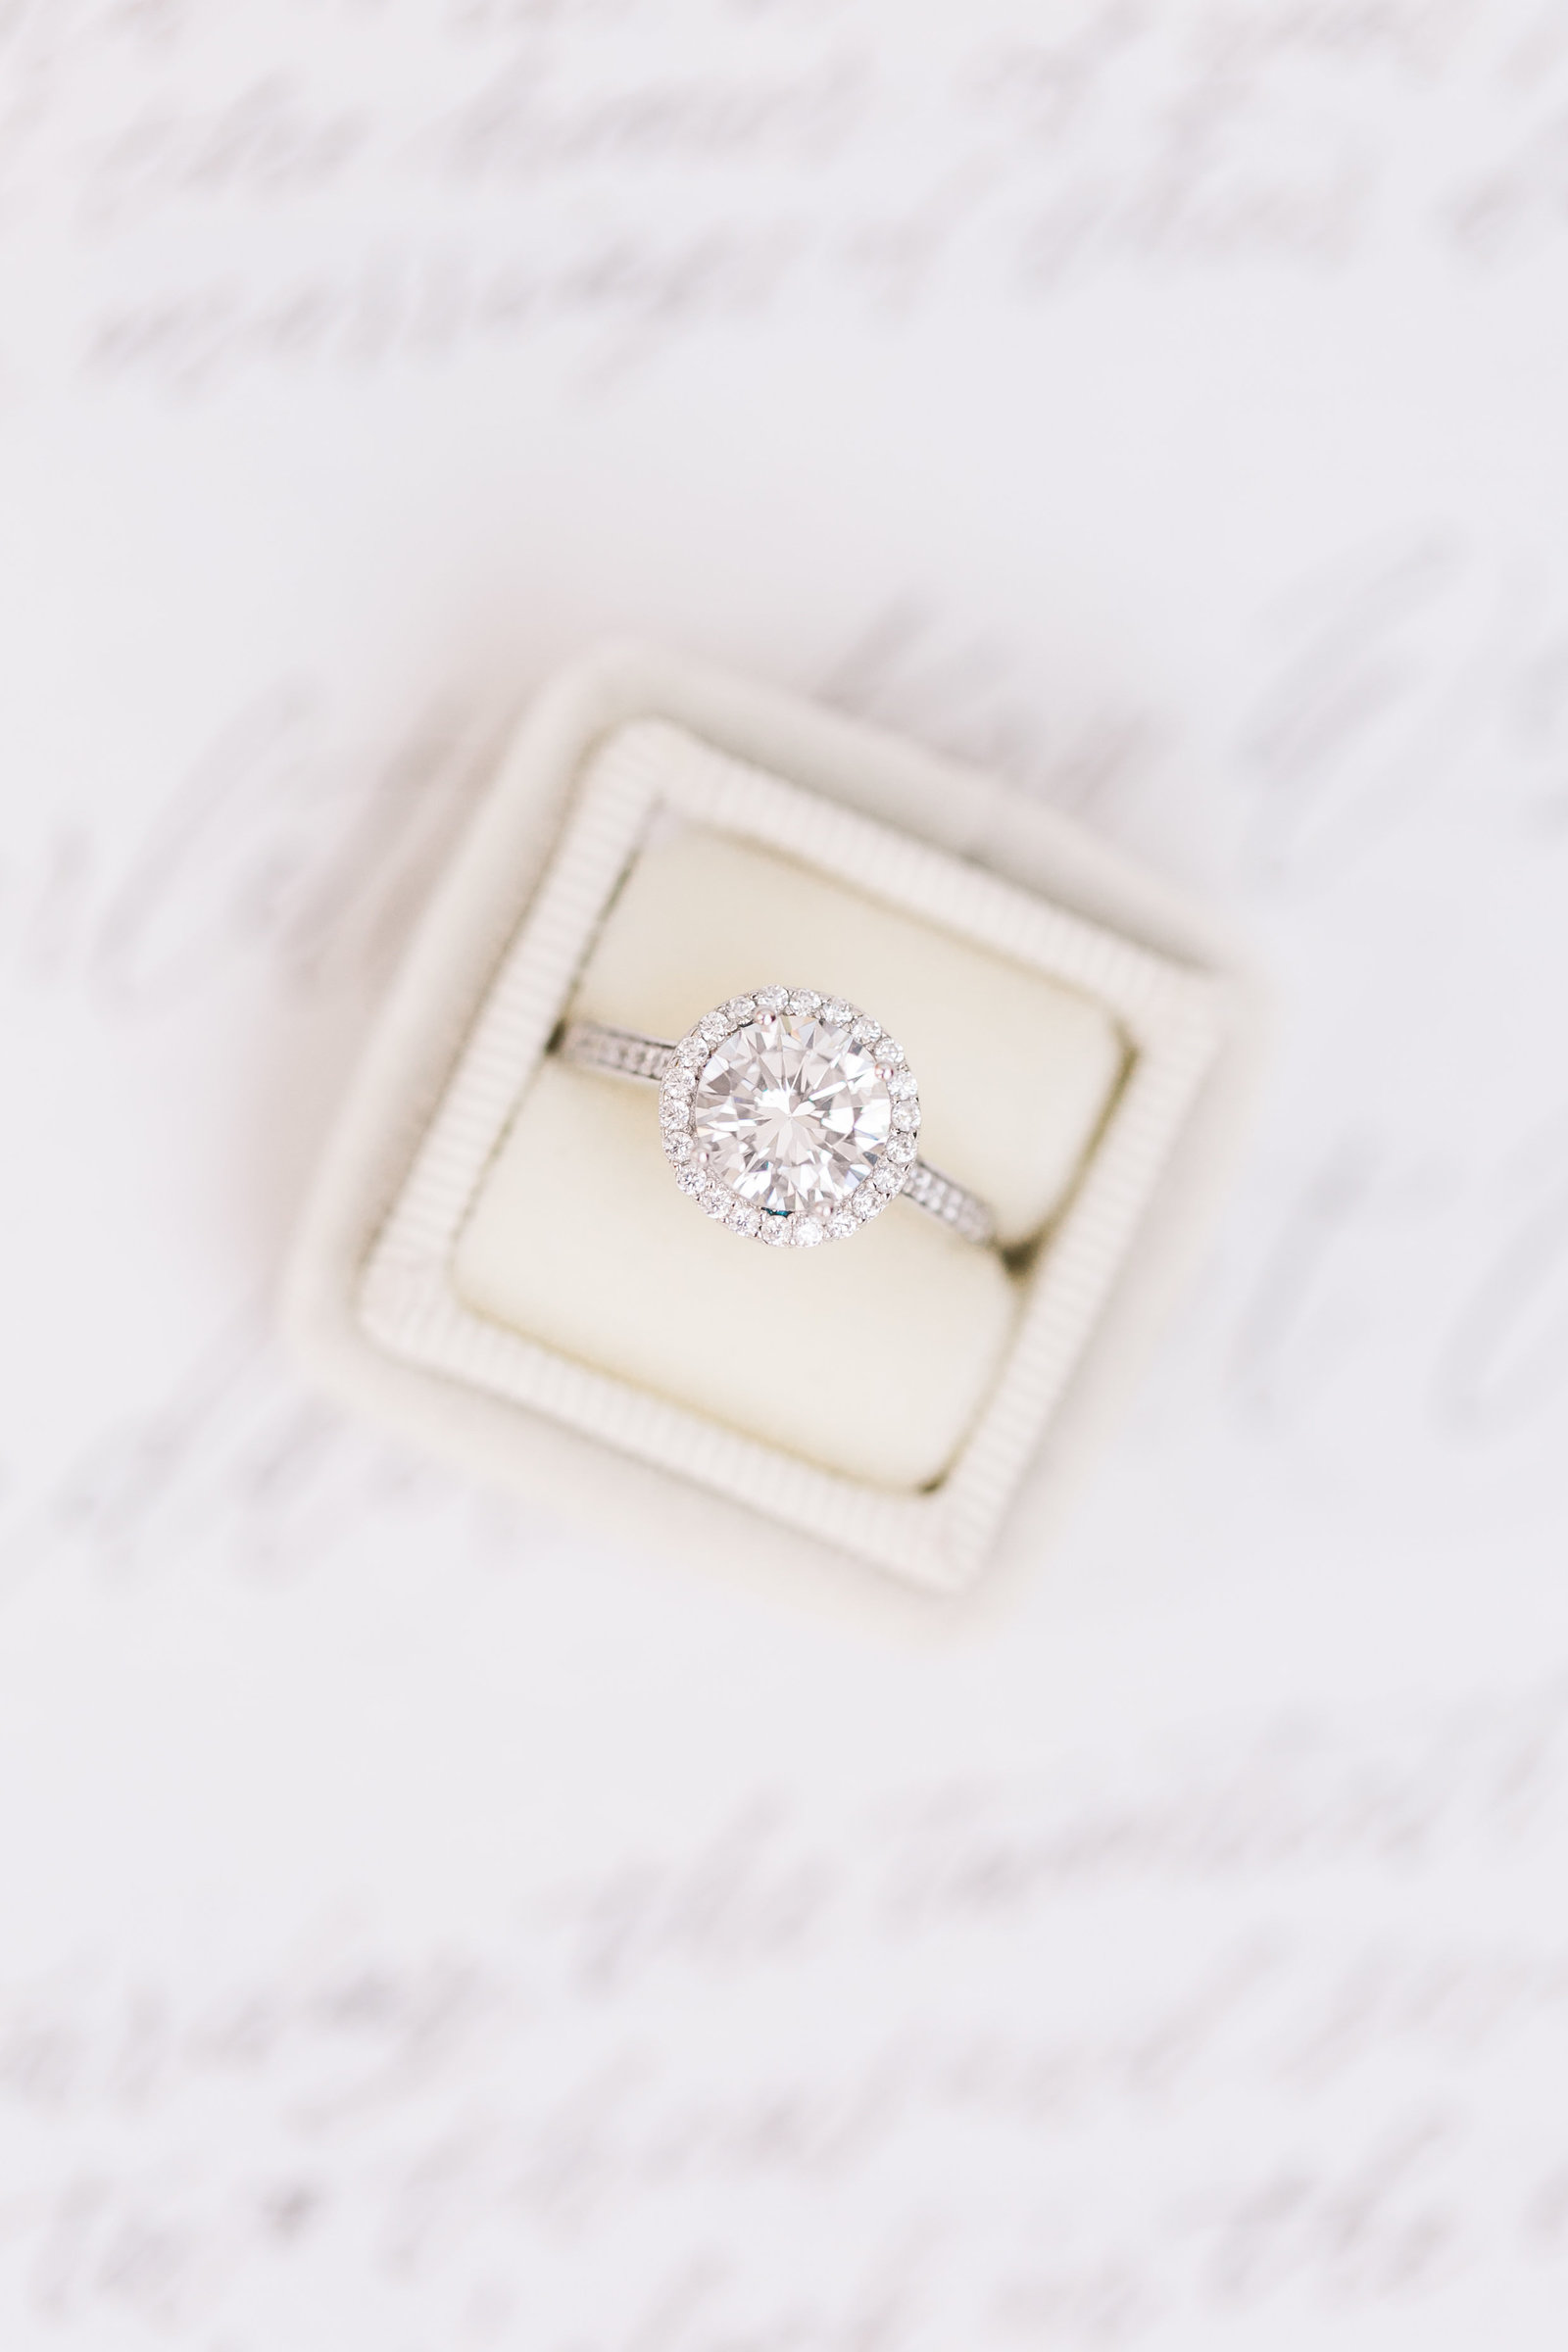 Encrusted diamond ring in box sitting on top of a wedding invitation